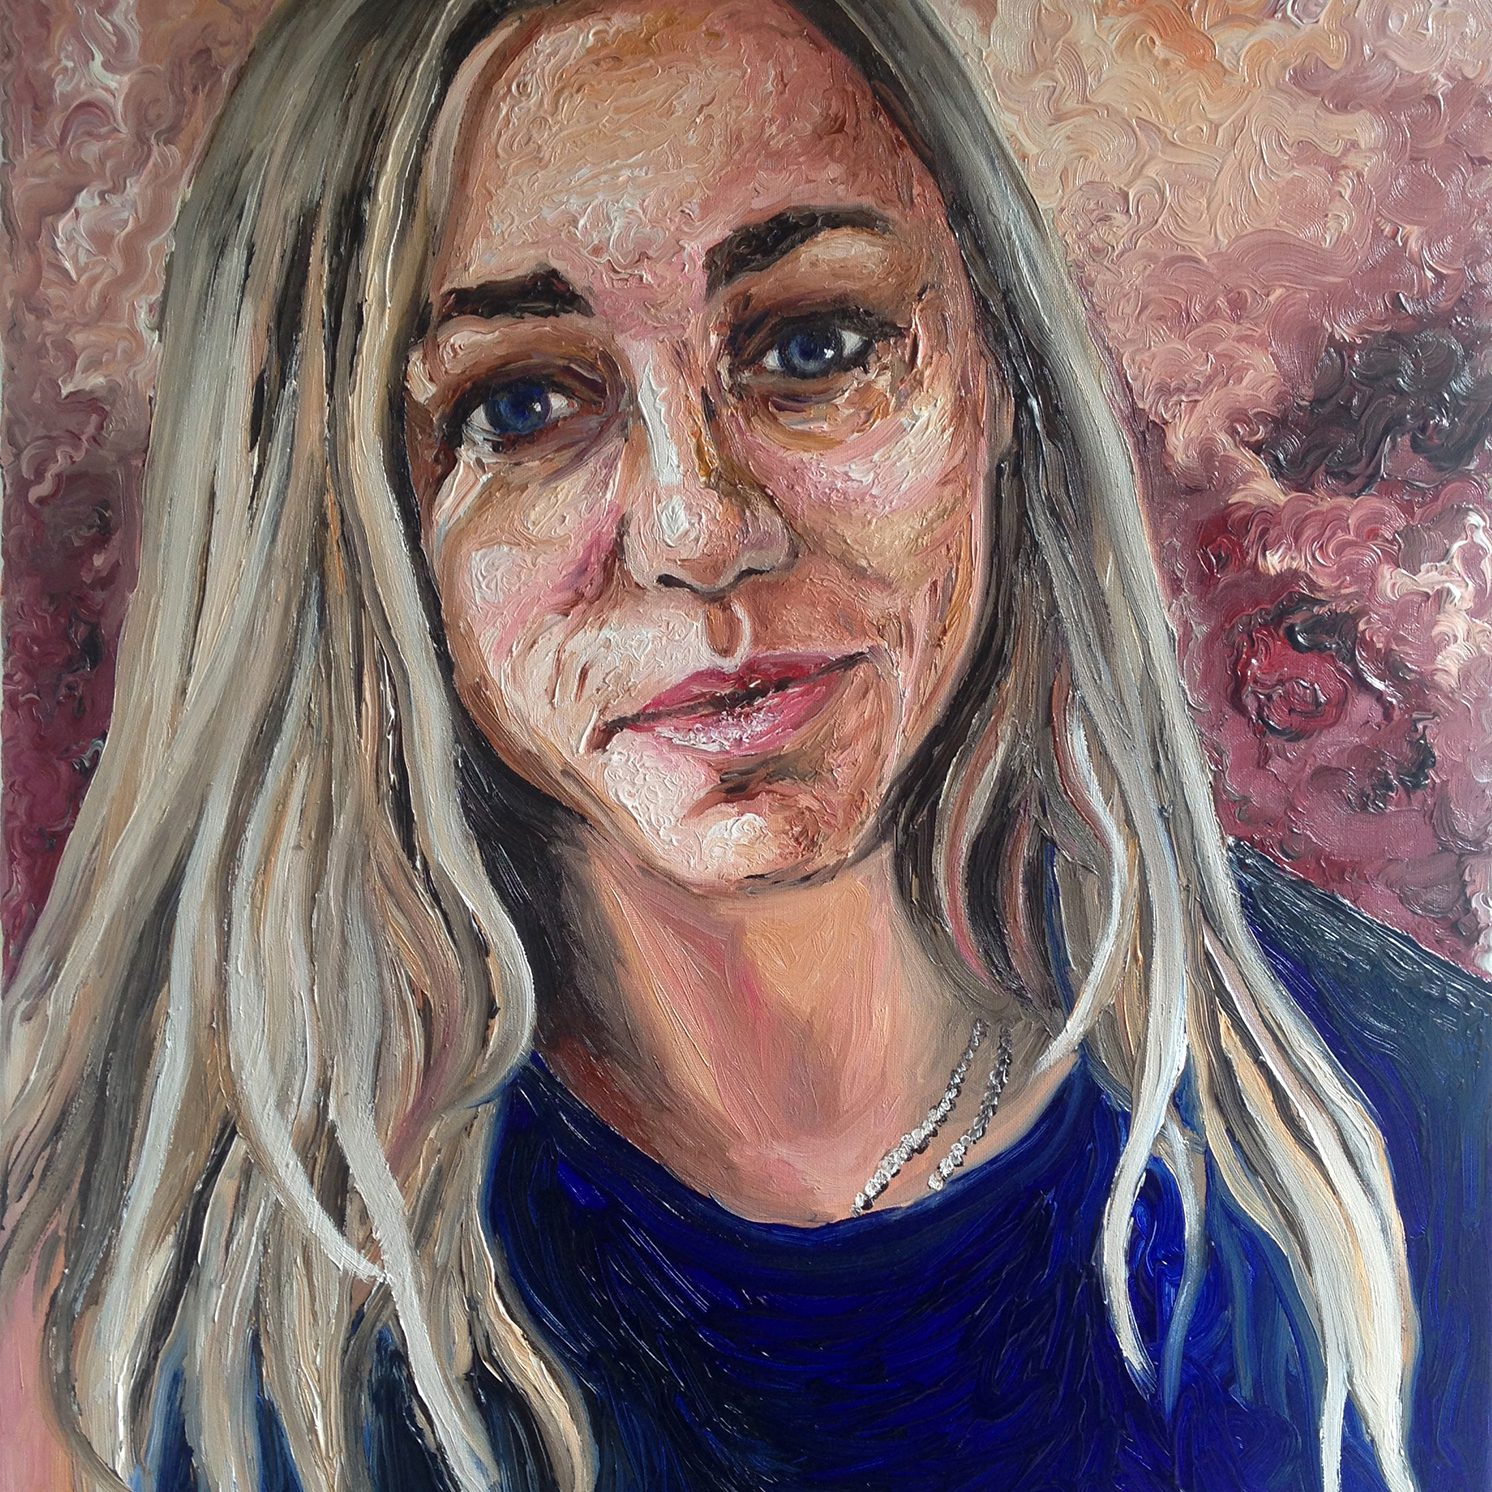 Laura | Oil on canvas | 60 x 80 cm | 2014